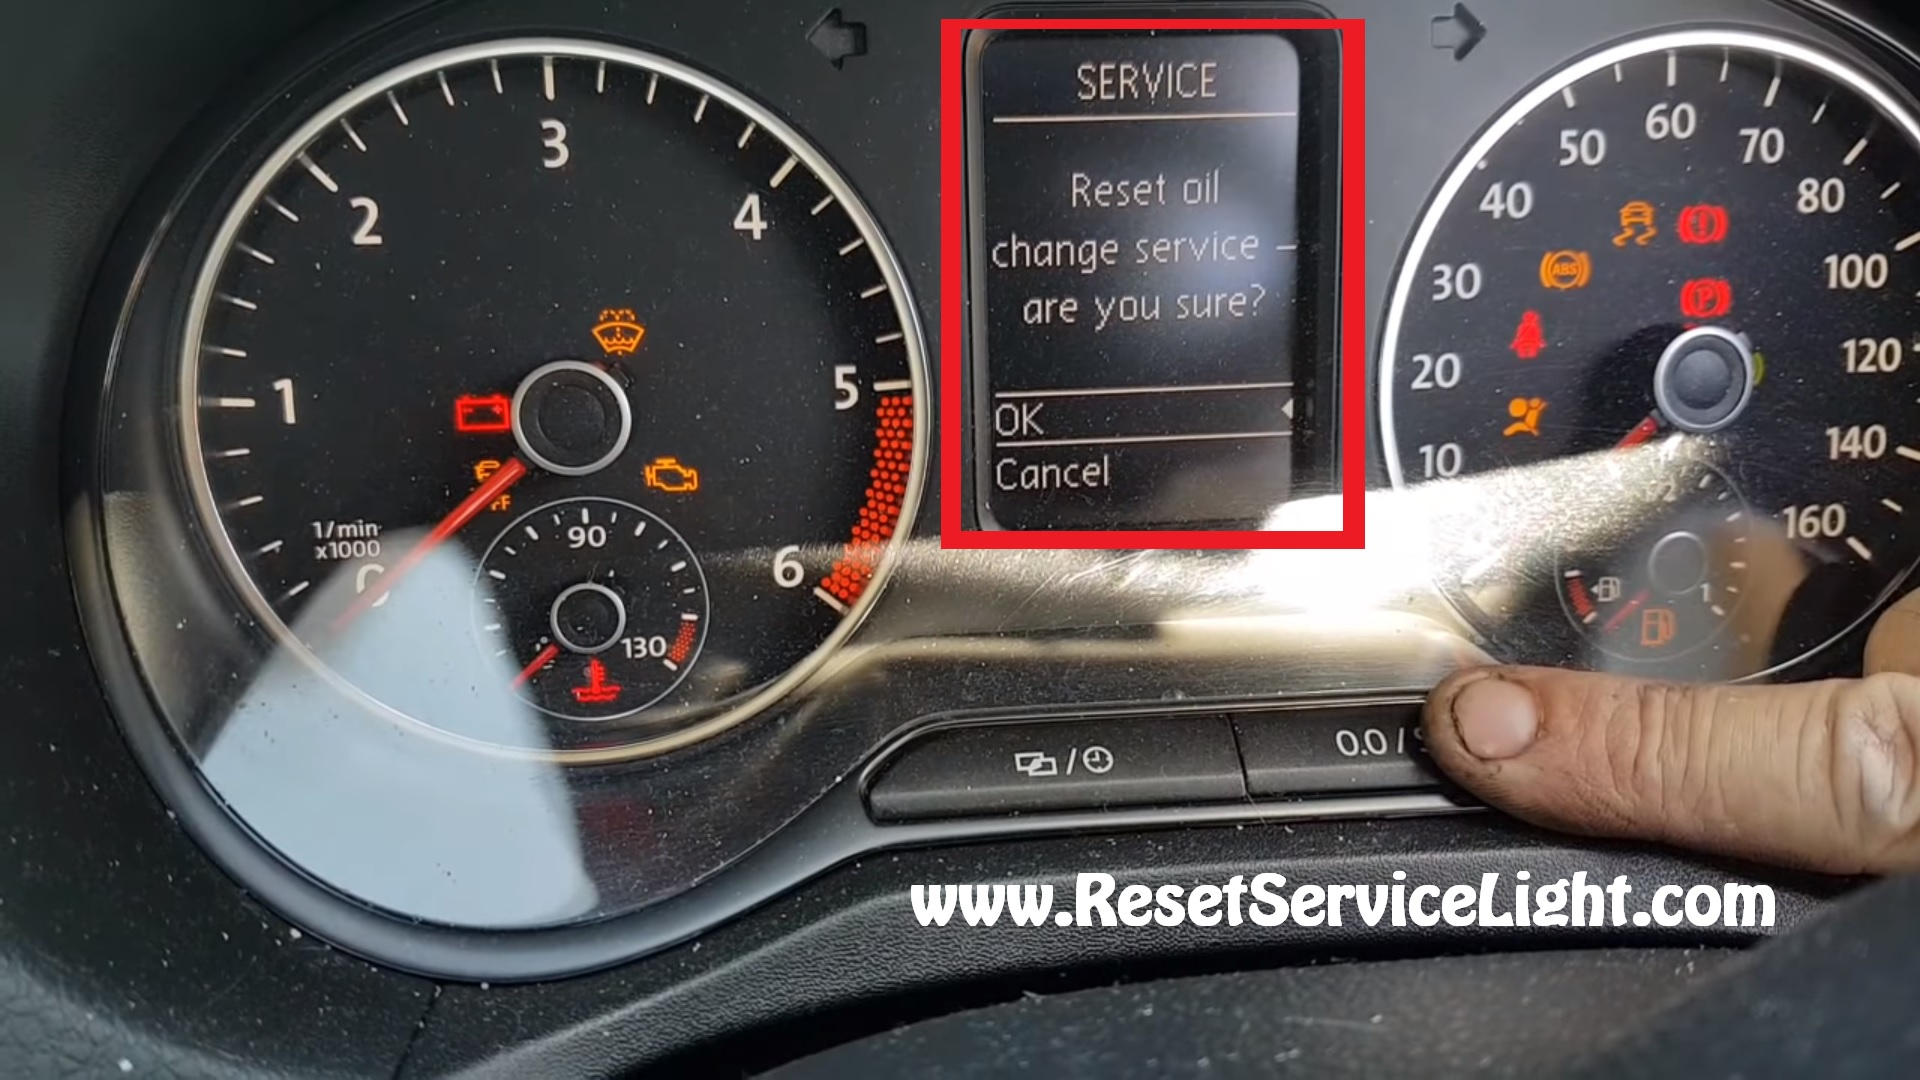 Turn off maintenace oil service VW Amarok